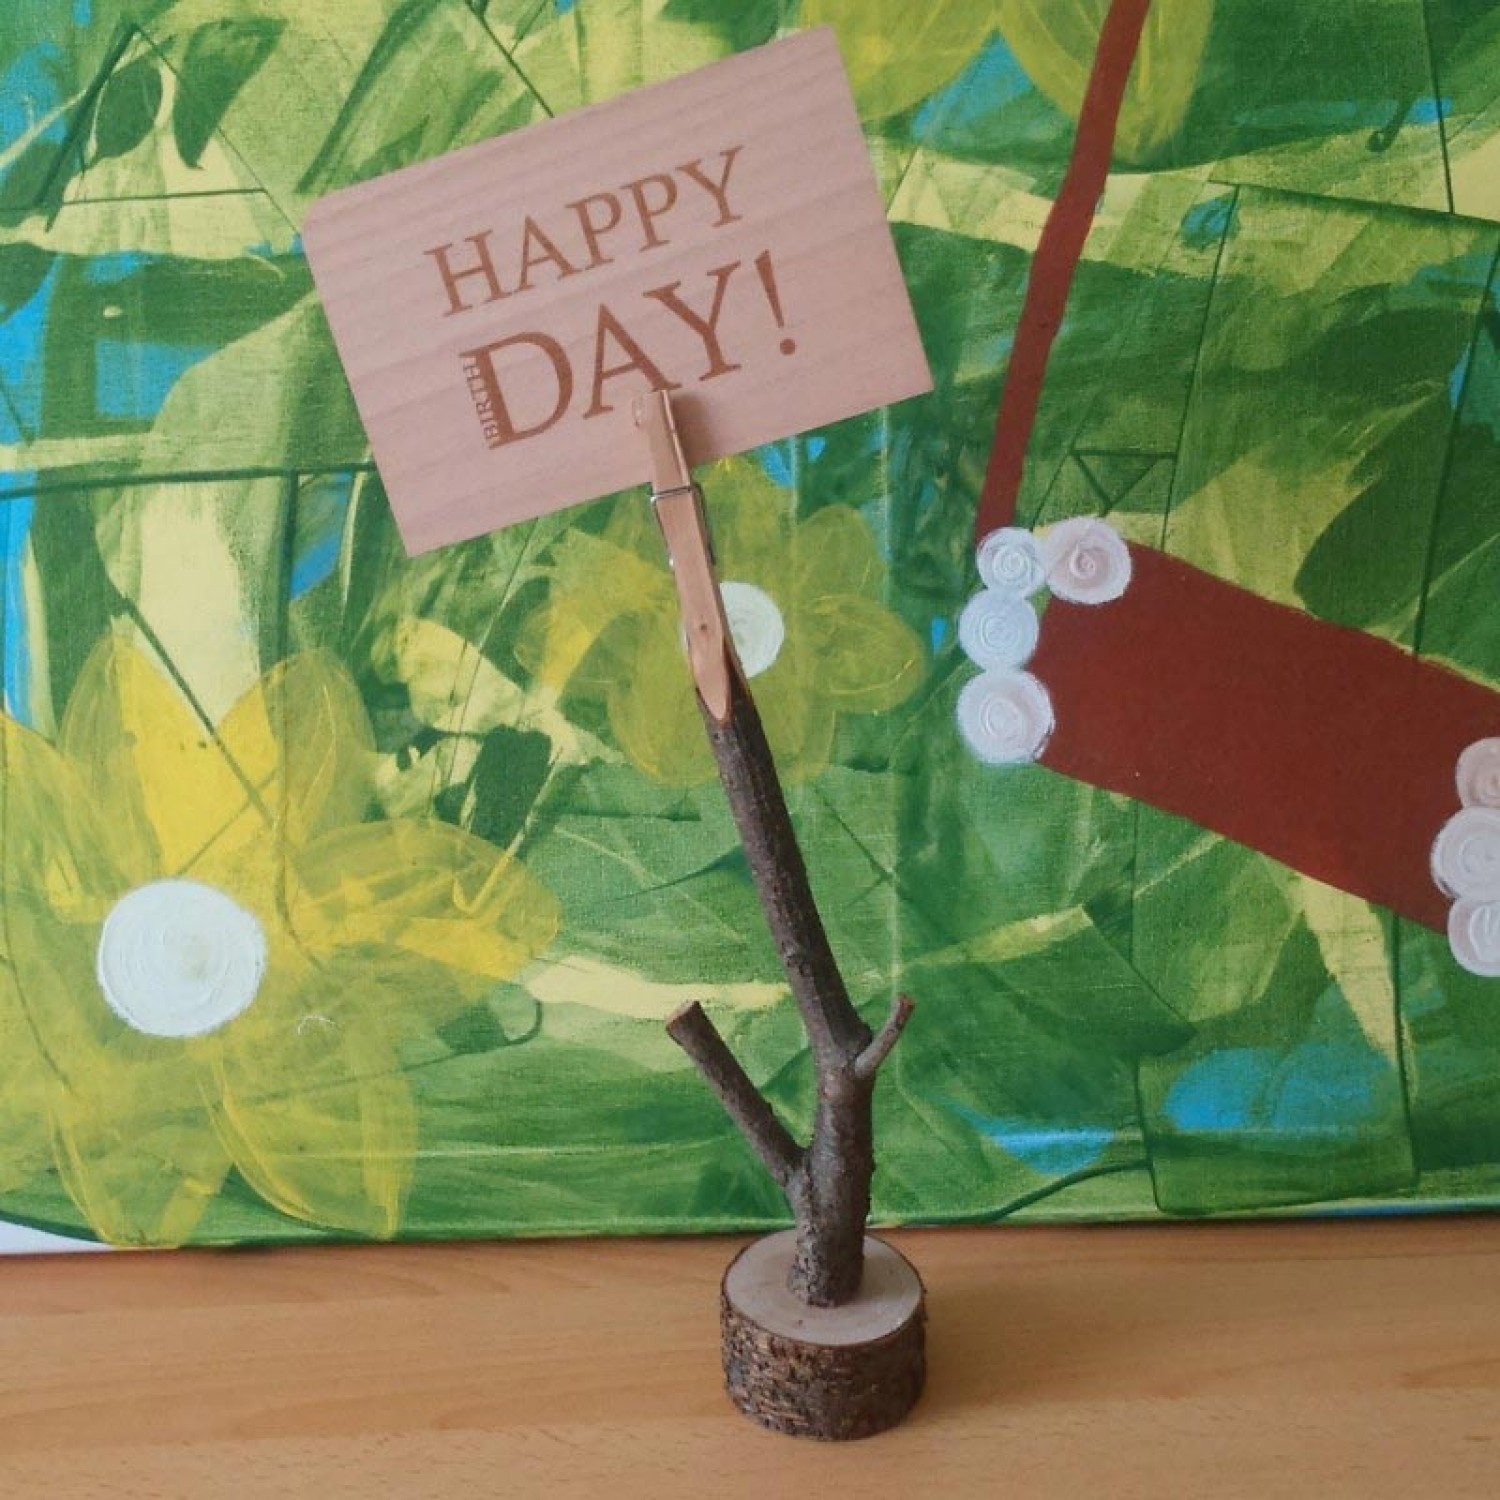 Pinch – Memohalter mit Holzpostkarte HAPPY DAY